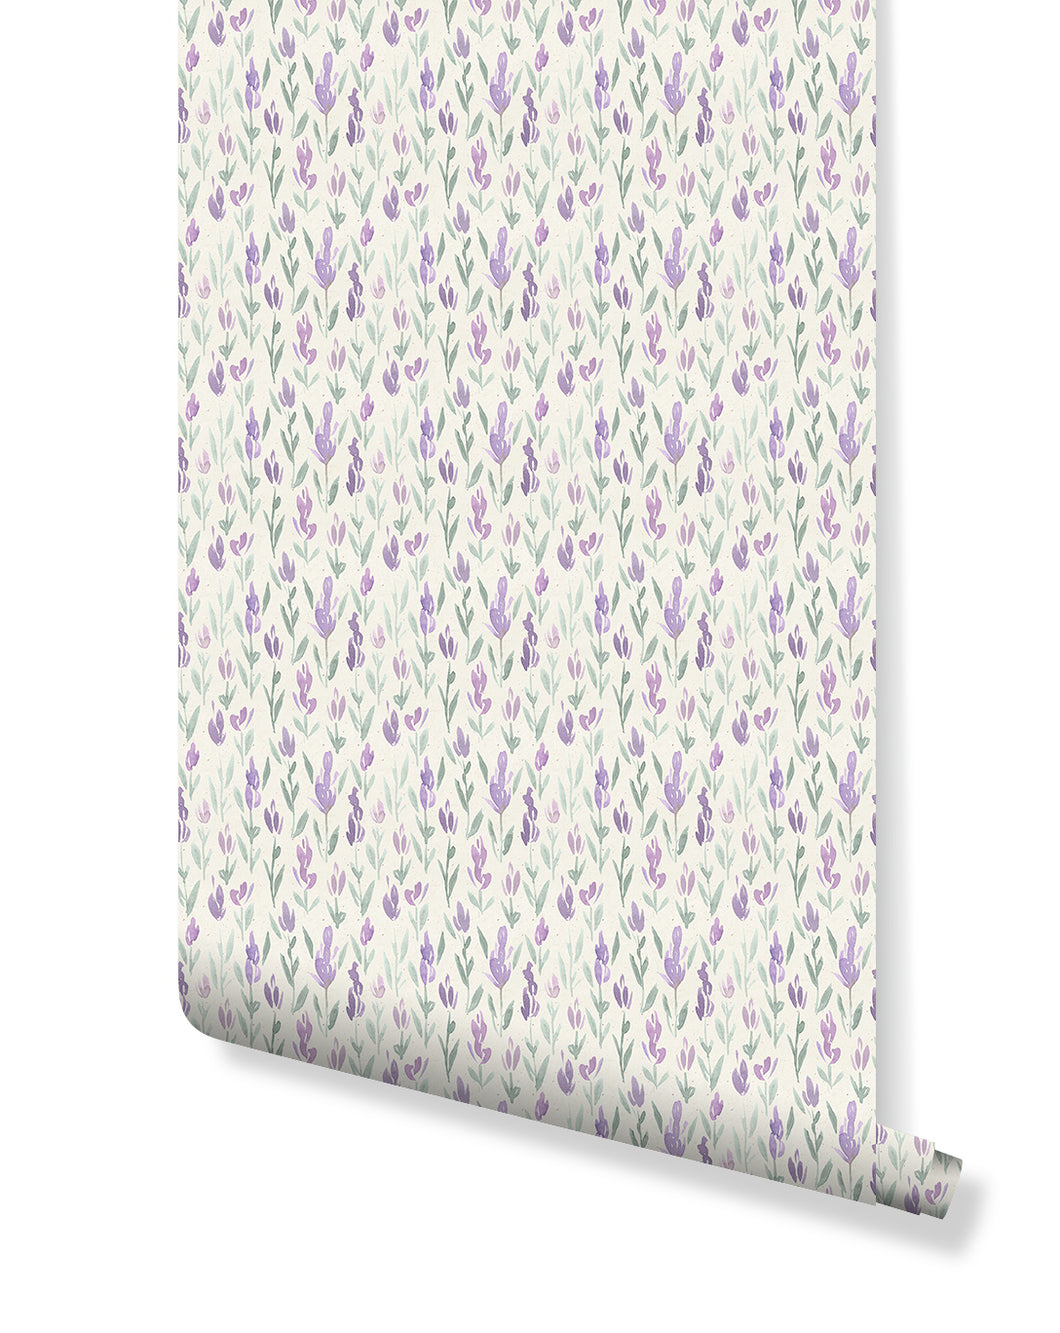 Watercolor Lavender Removable Wallpaper Vinyl, Self Adhesive Floral Wall Paper with Paper Texture Background Peel and Stick Aplication CC153